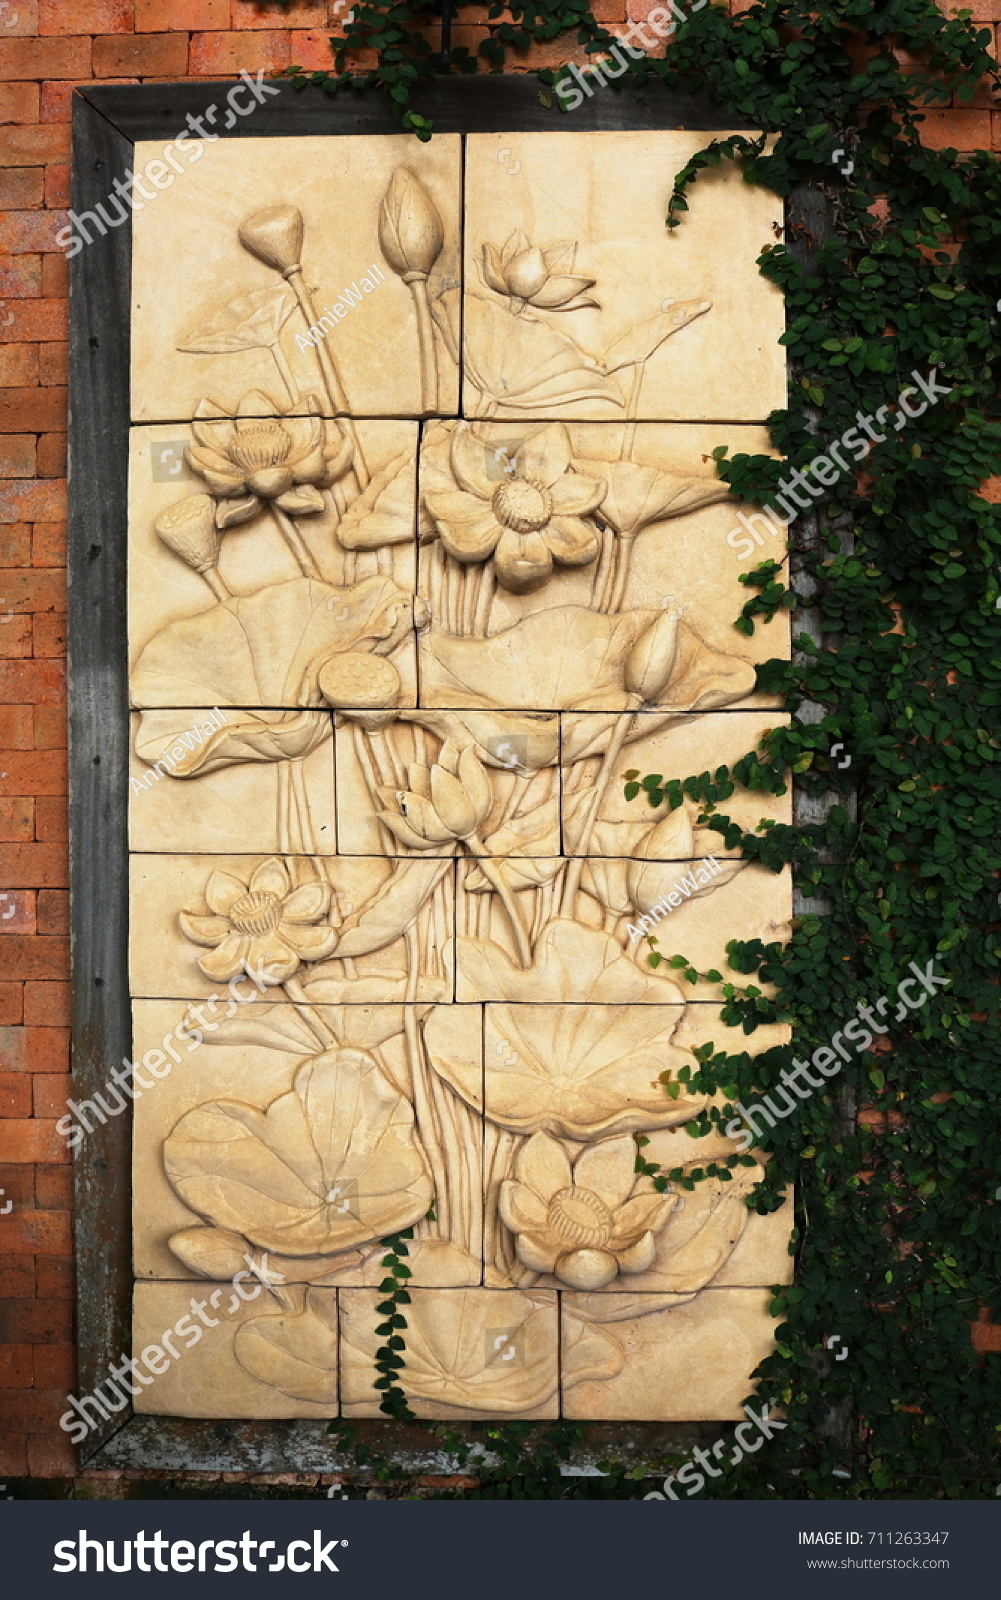 Amazing Clay Wall Art Images - The Wall Art Decorations ...